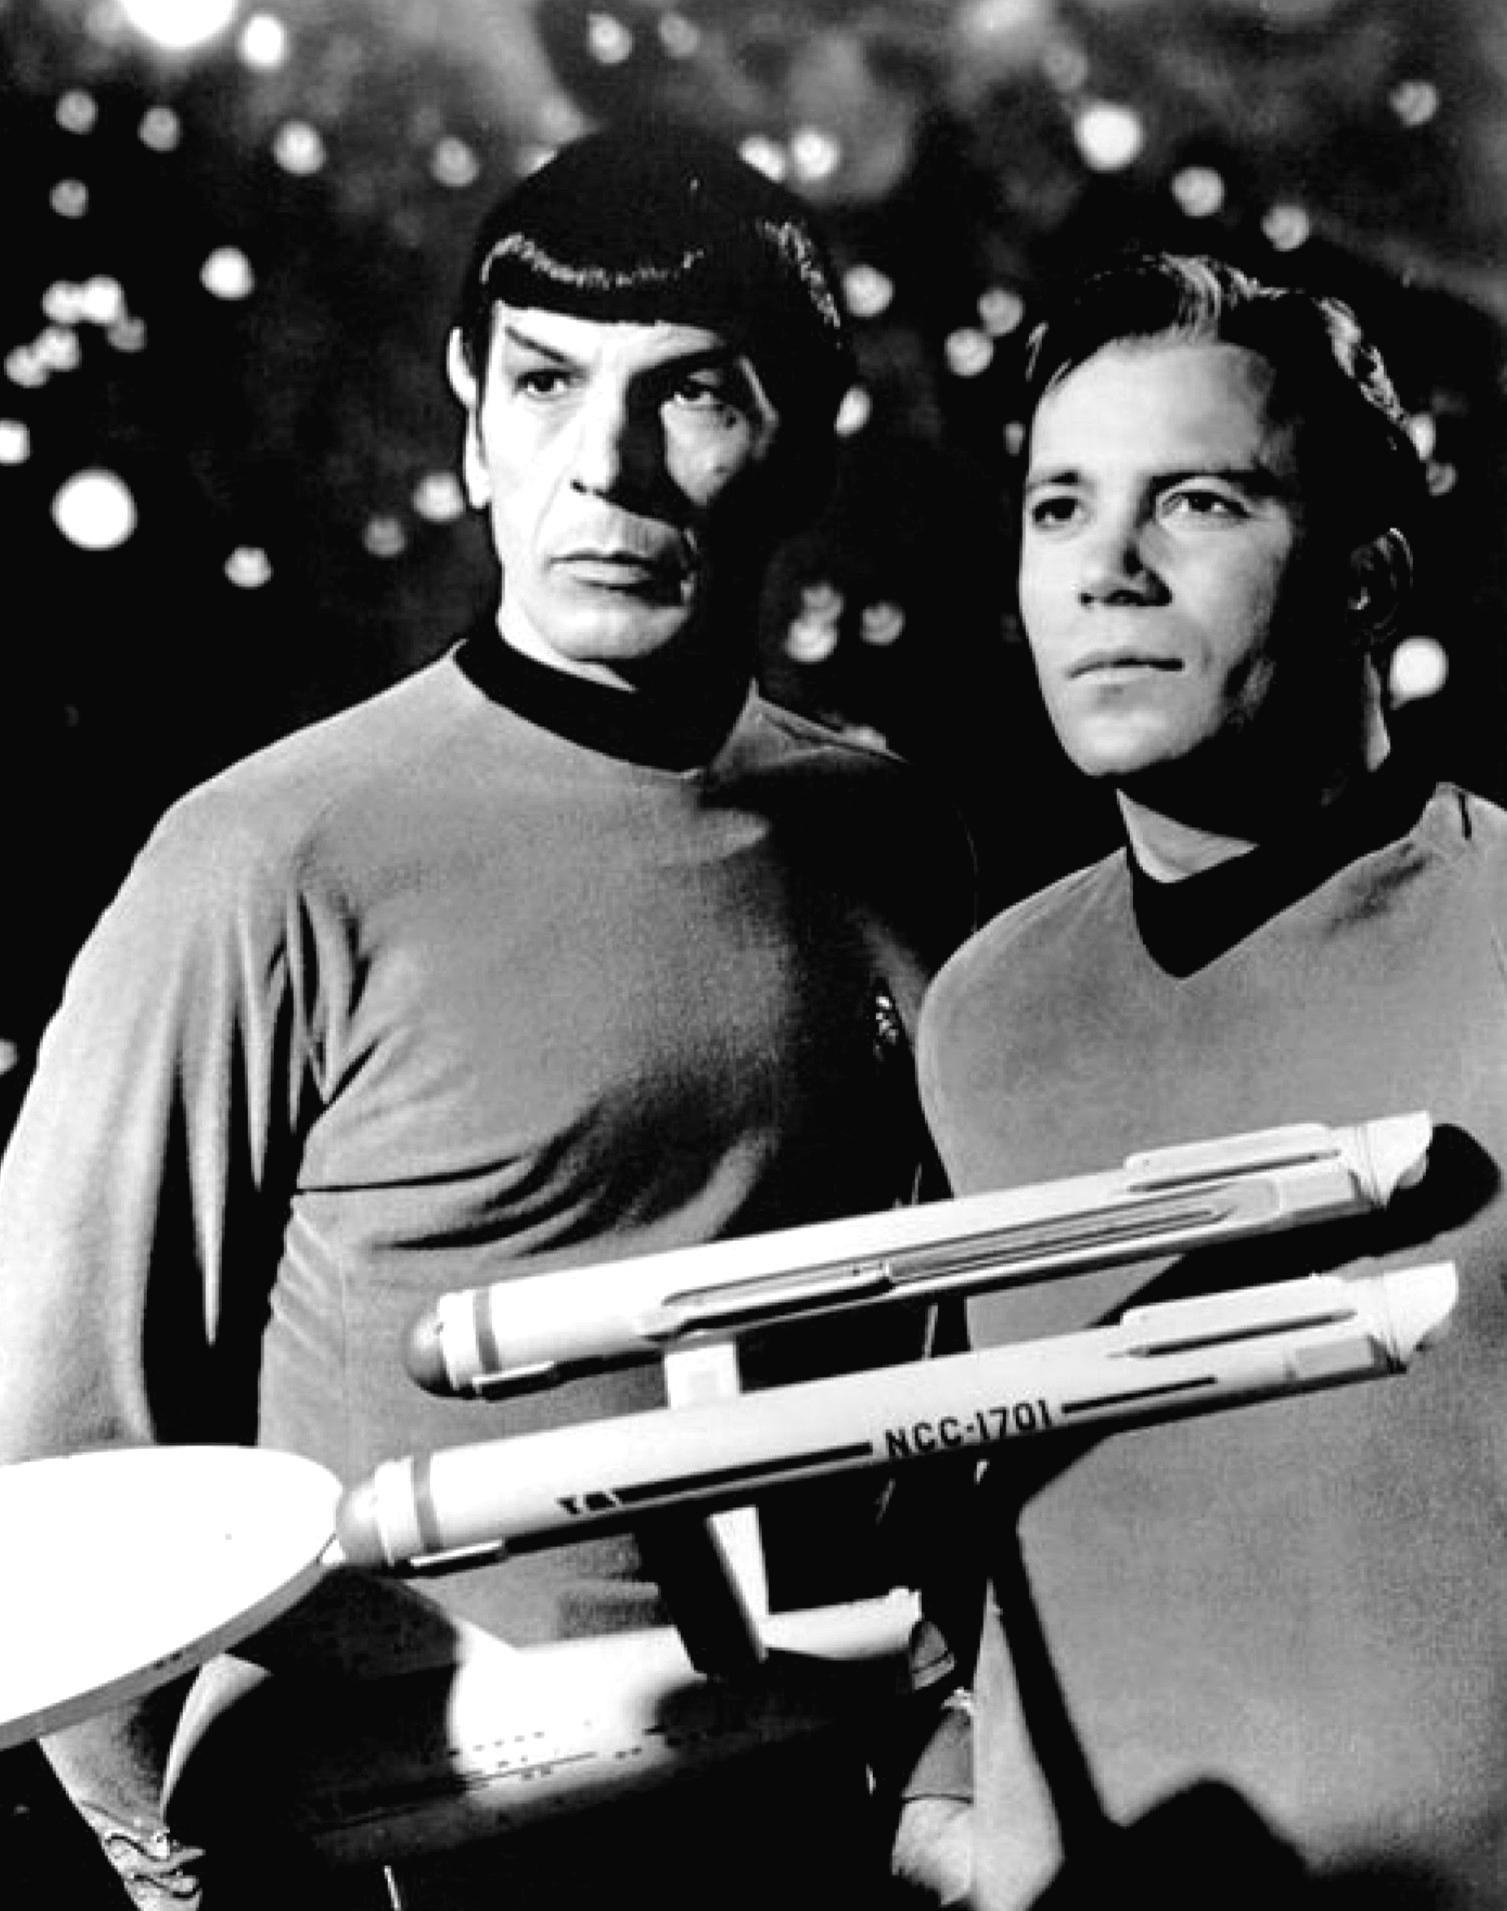 https://upload.wikimedia.org/wikipedia/commons/a/a8/Leonard_Nimoy_William_Shatner_Star_Trek_1968.JPG